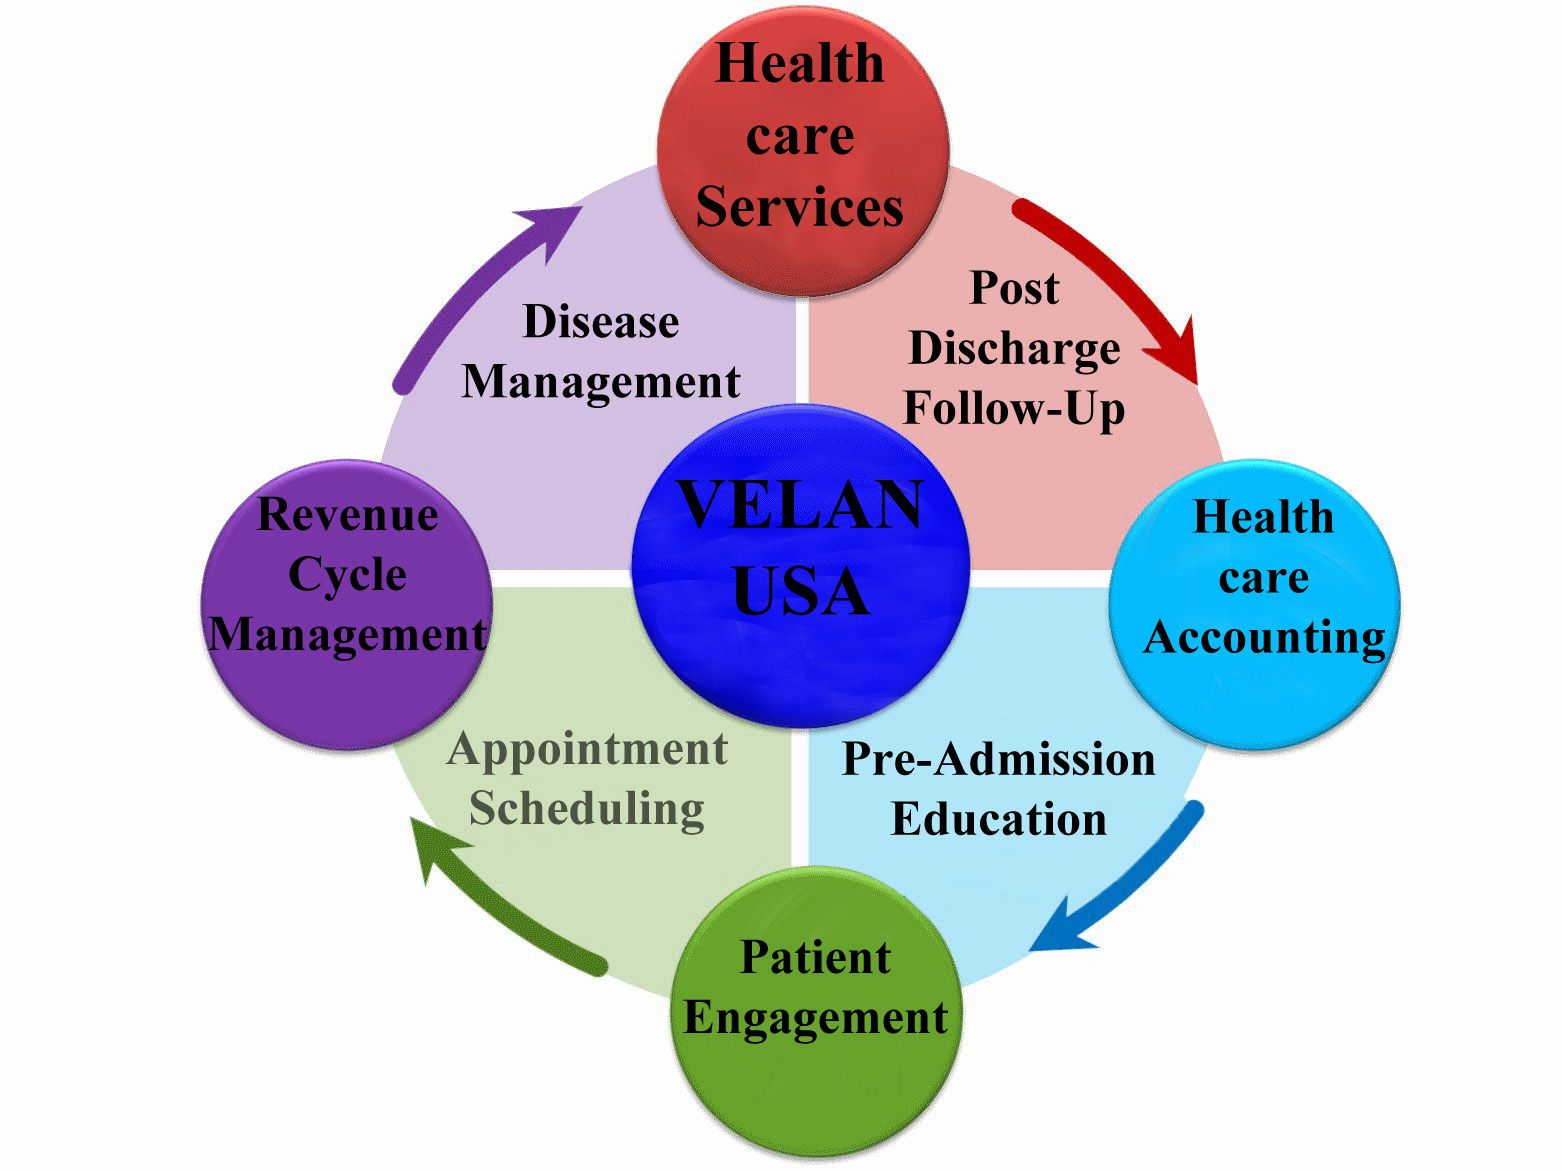 medium resolution of velanusa offers healthcare accounting revenue cycle management and patient engagement services we process your financial transactions and facilitate you